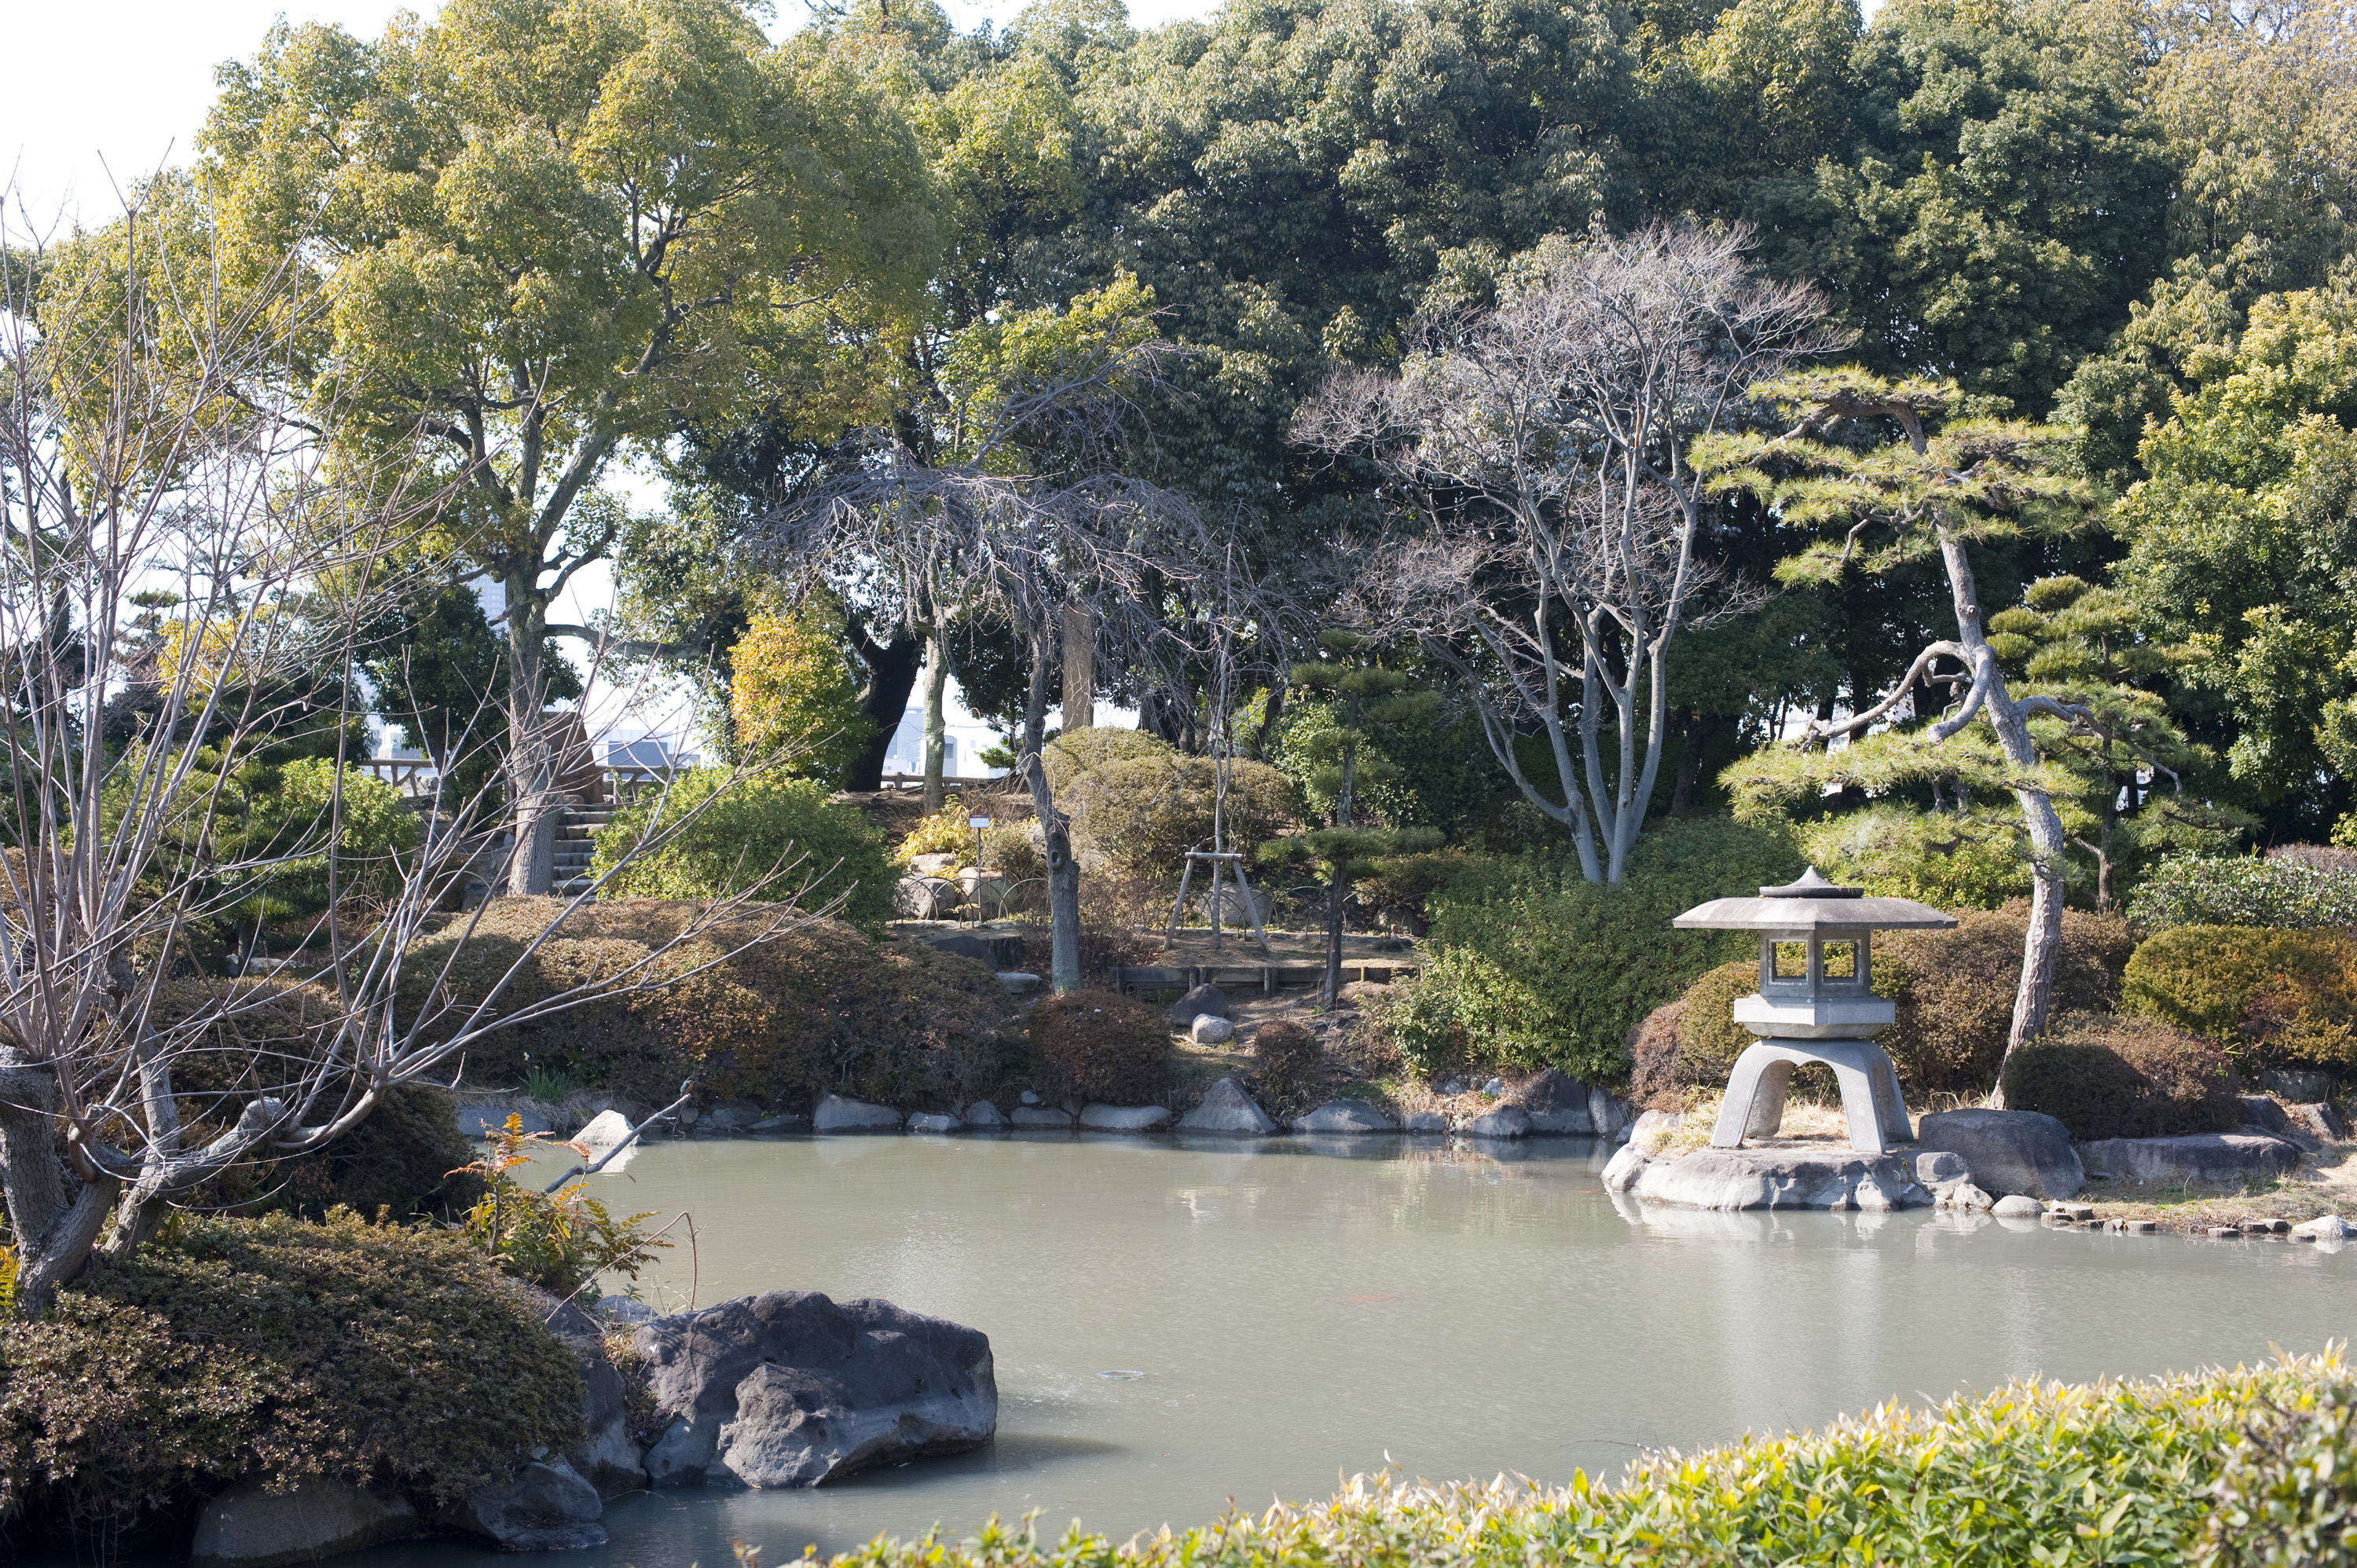 Tranquillity of a japanese garden 5388 stockarch free for Formal japanese garden